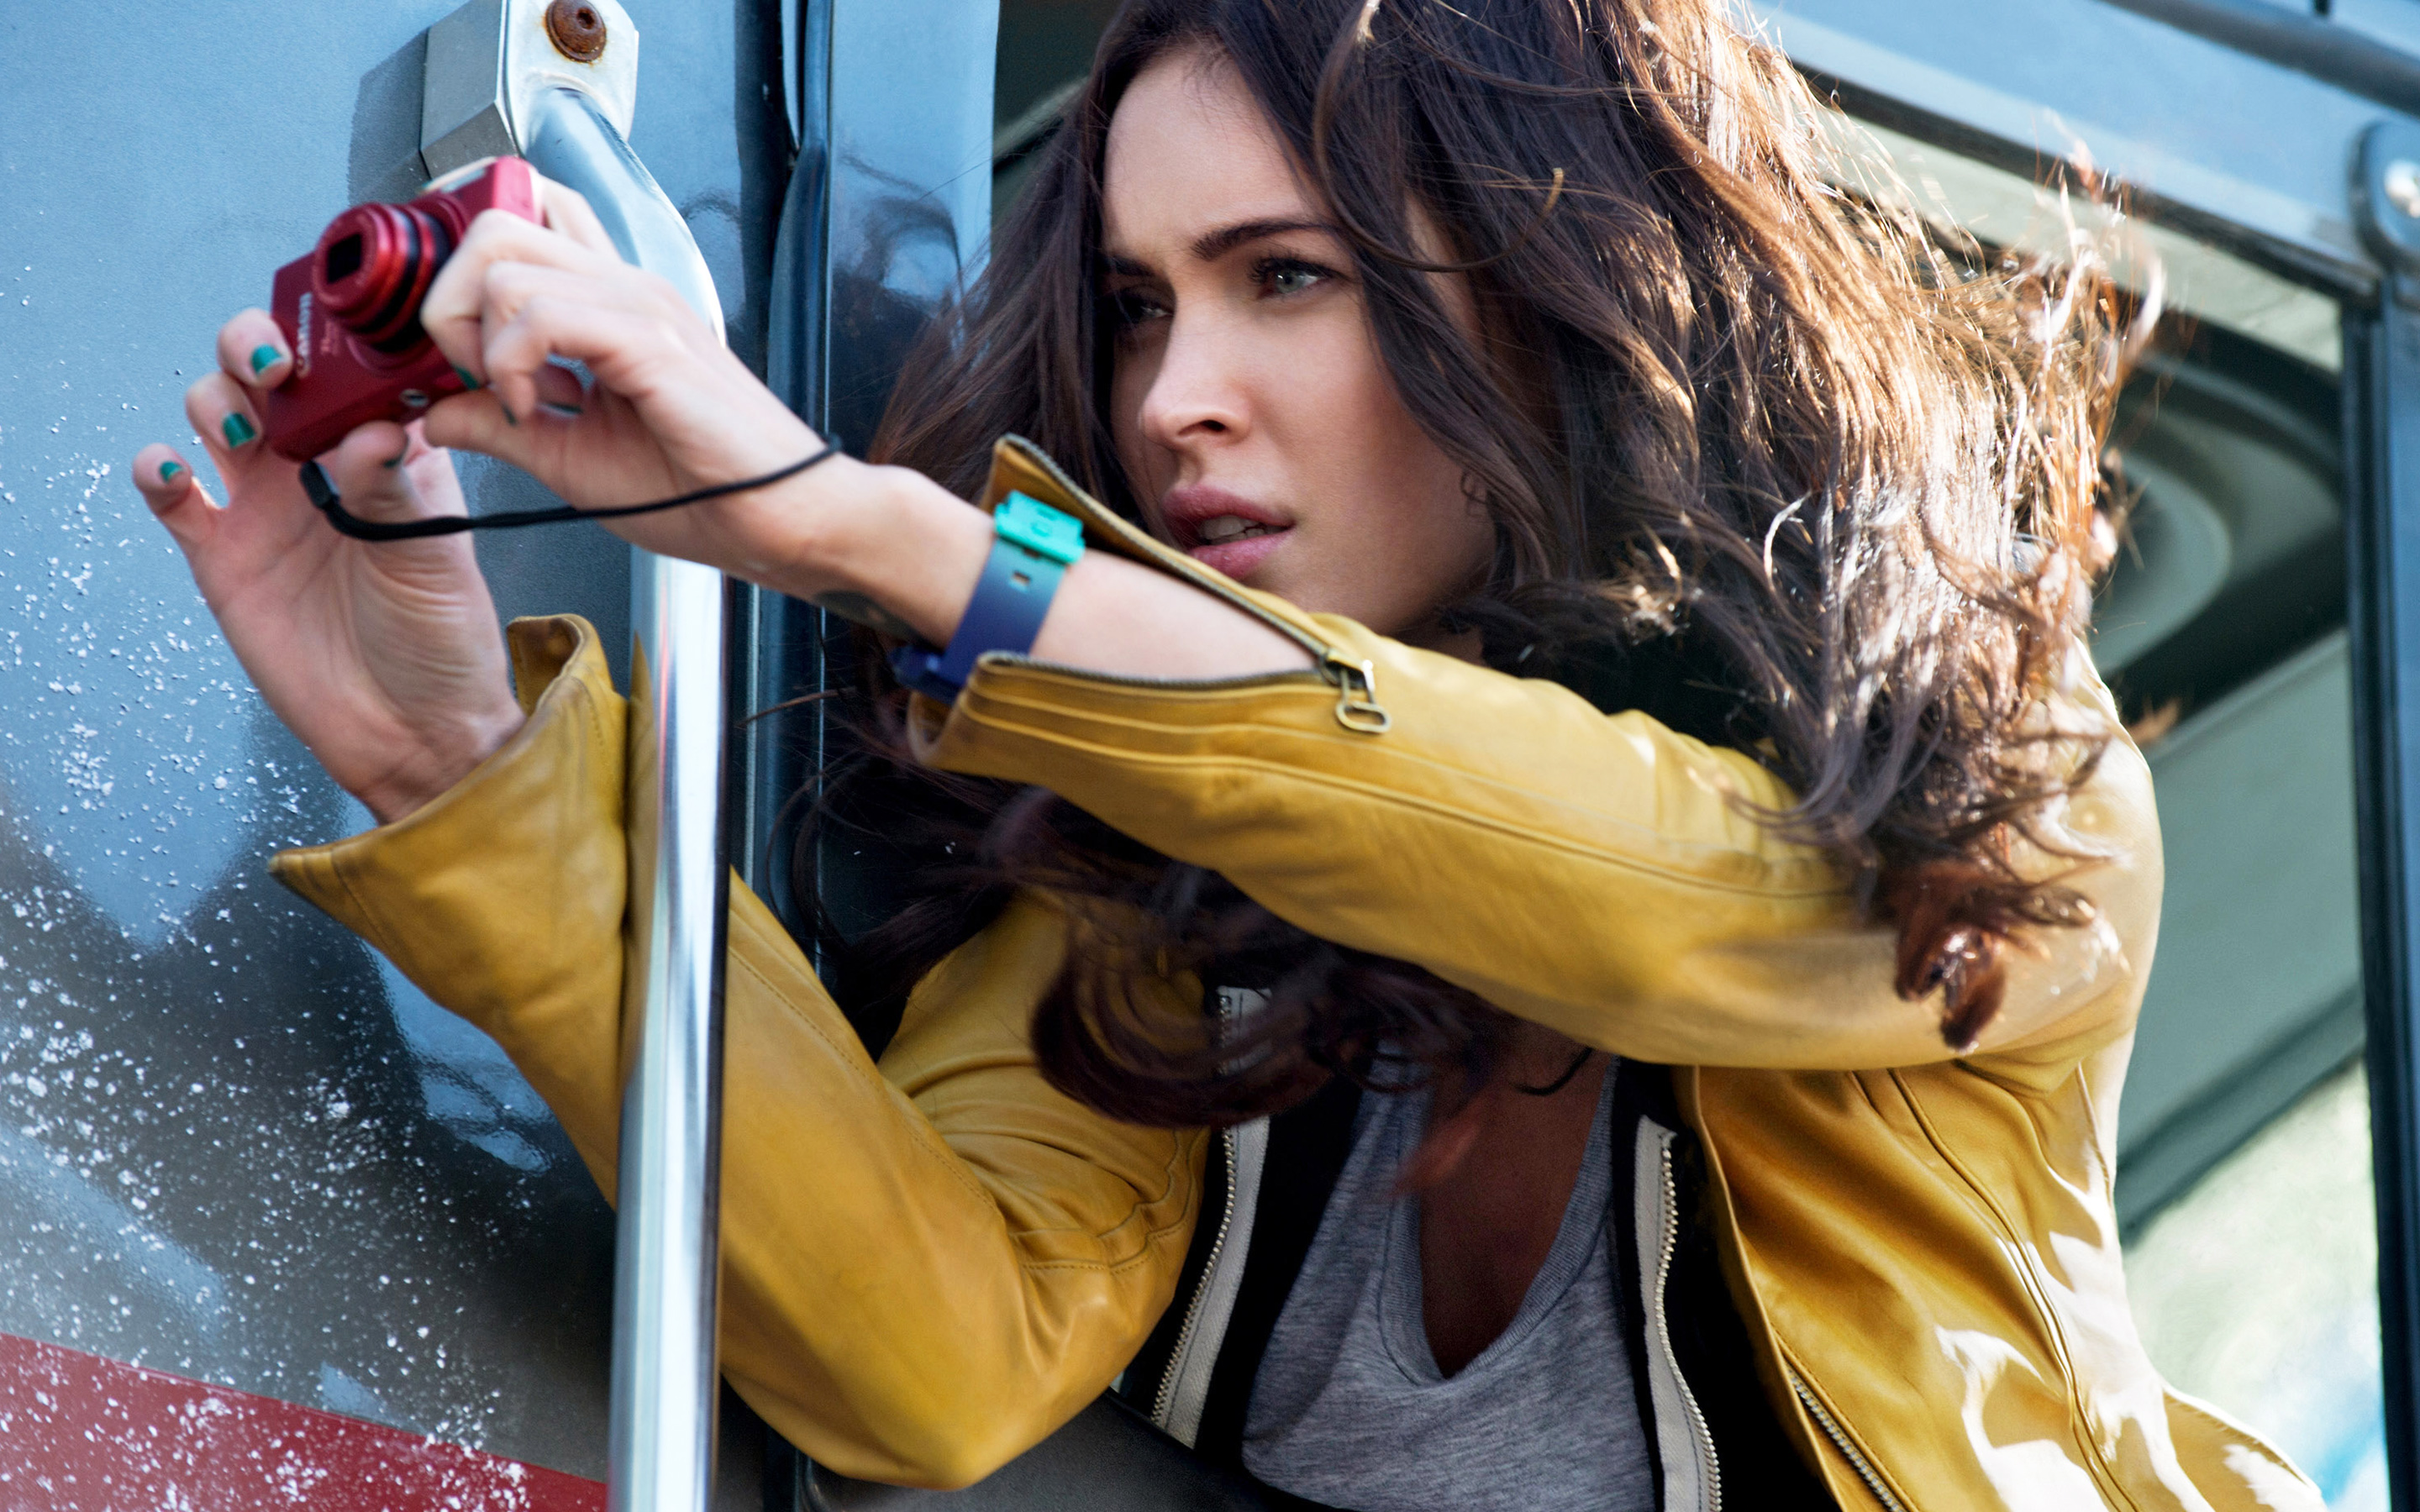 Megan Fox in Teenage Mutant Ninja Turtles 2542.11 Kb